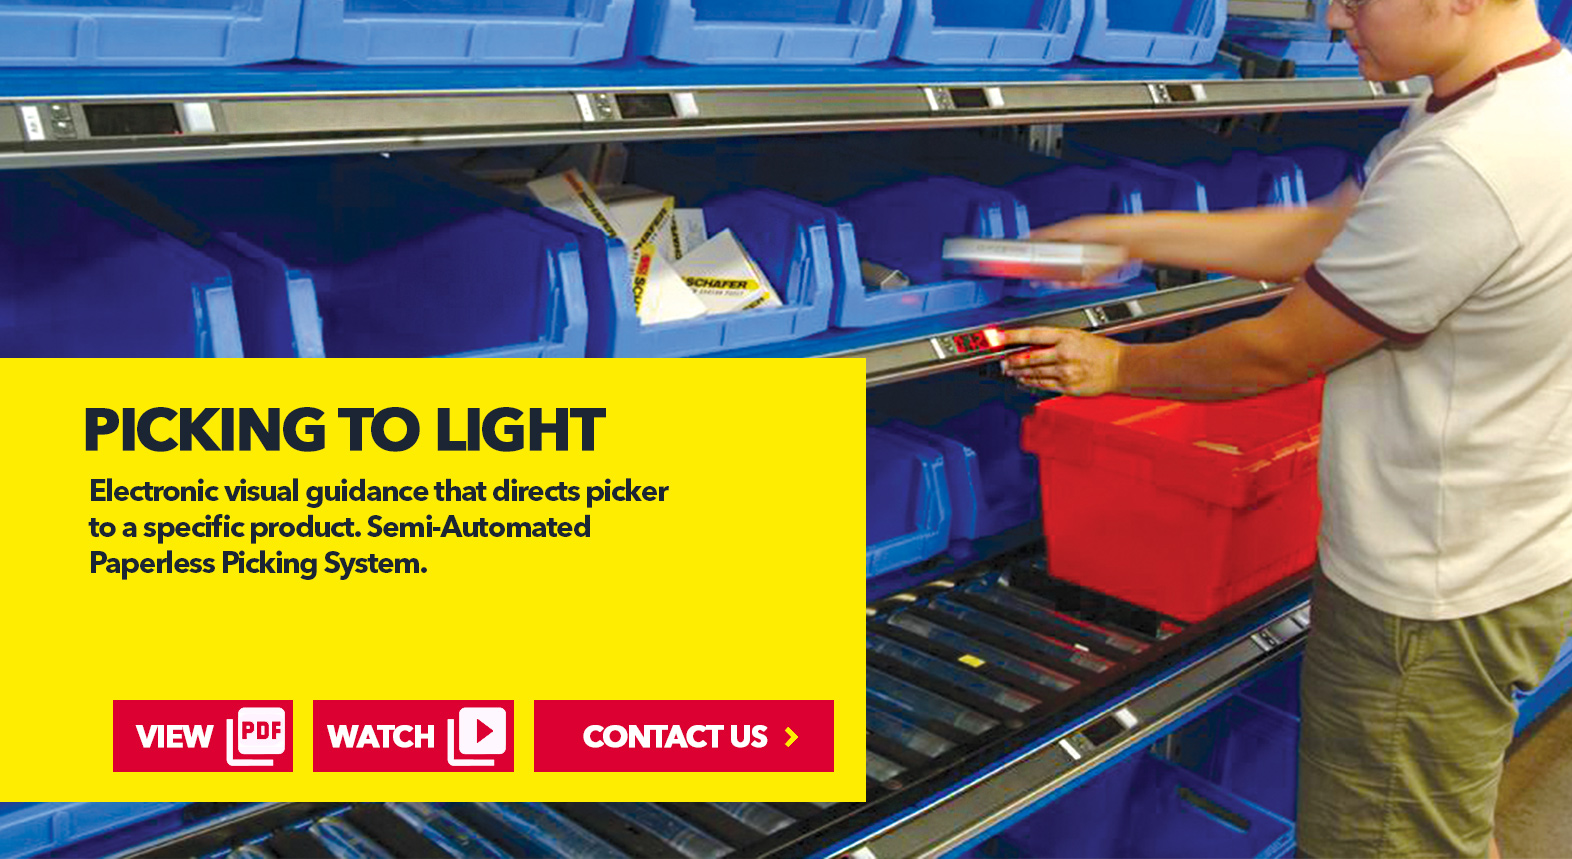 Picking to Light by SSI Schaefer USA Download Guide, Watch Video, Contact Us. www.chaefershelving.com